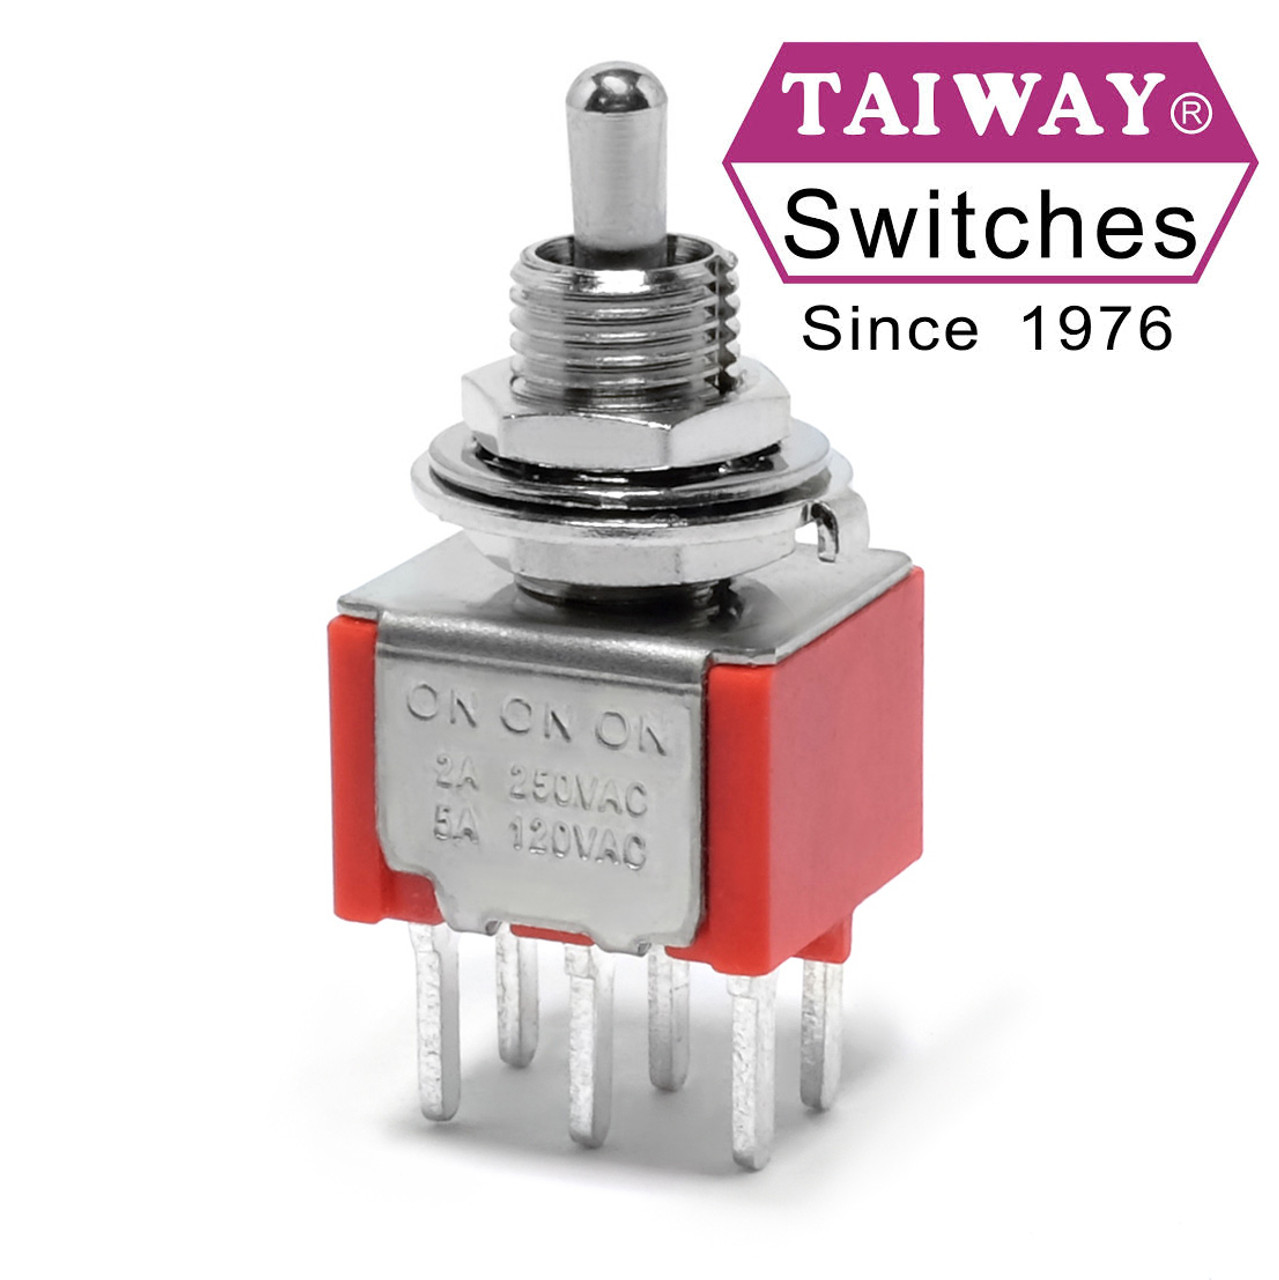 Taiway DPDT On On On Switch - PCB Mount - Short Shaft on